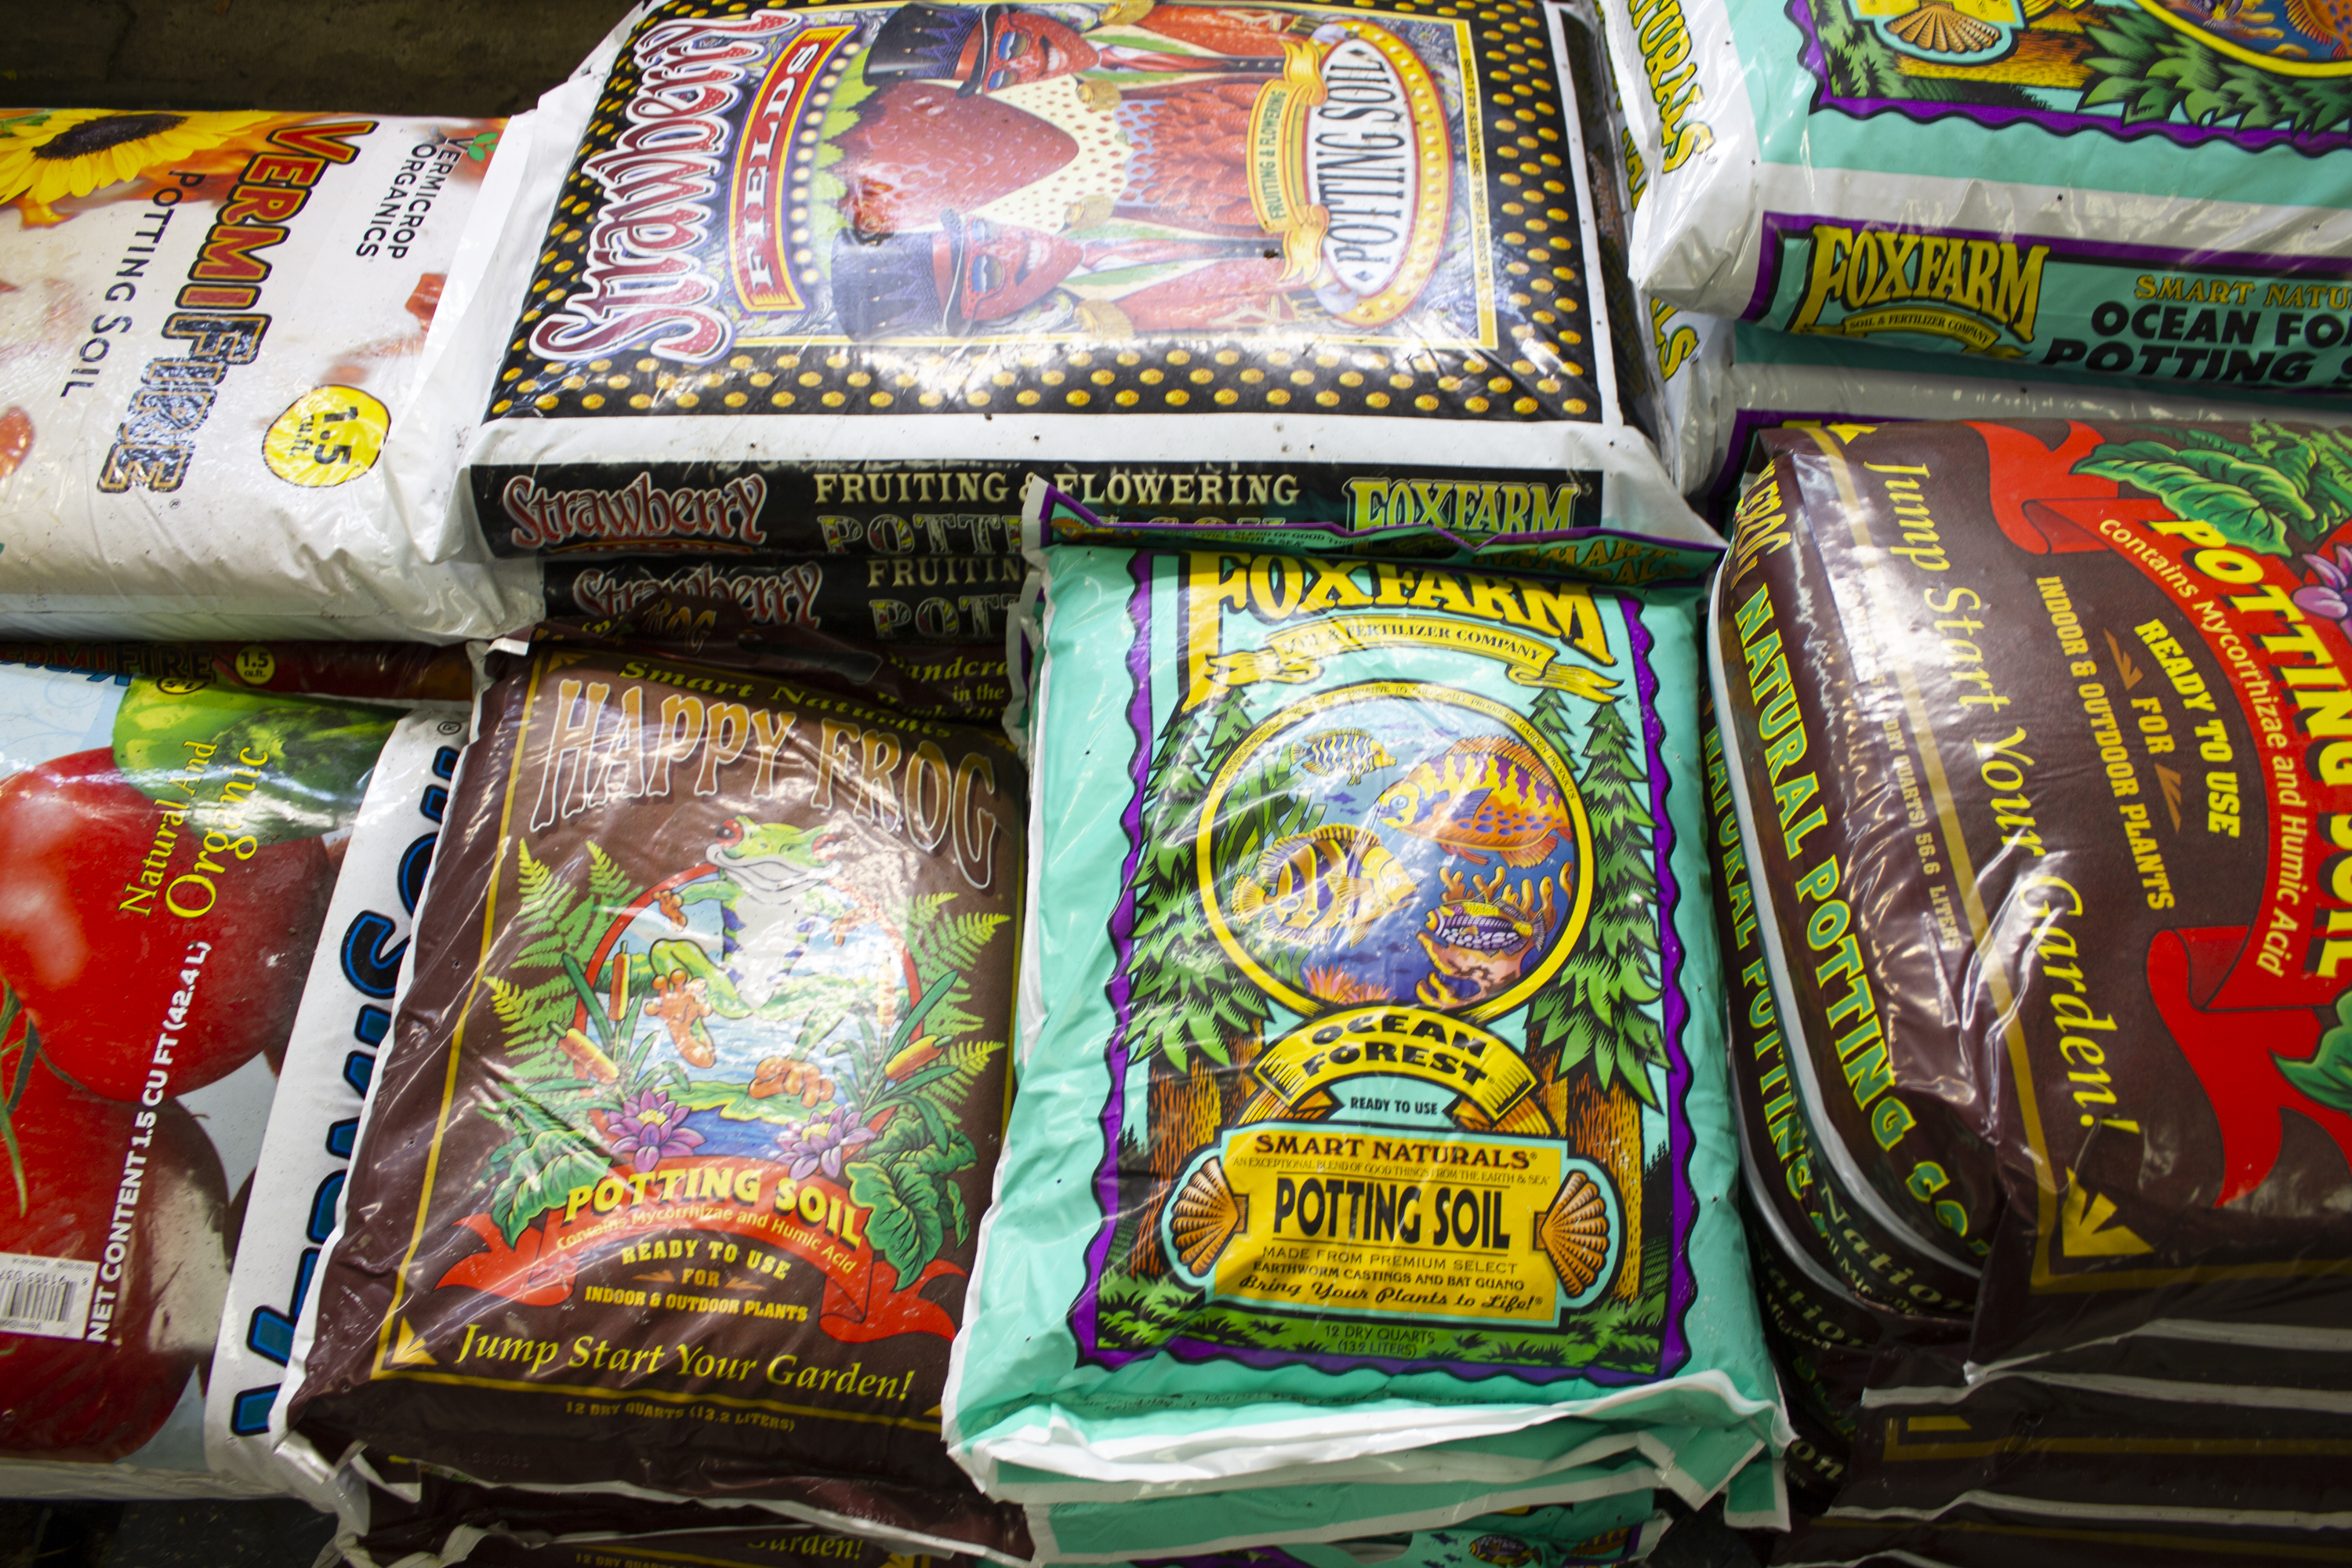 Back by popular demand, our vermicompost potting soil mix is back in stock